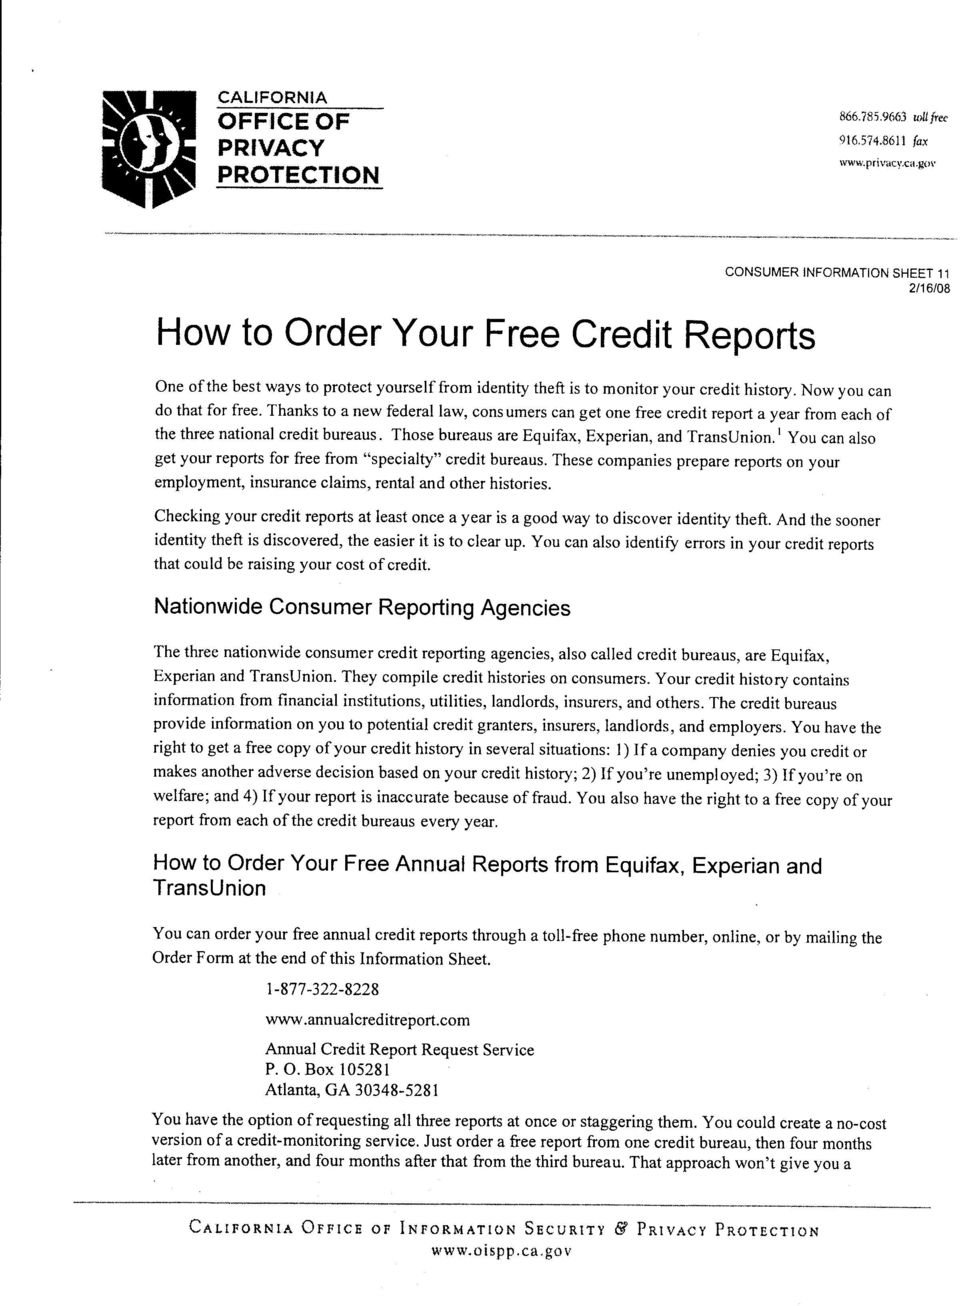 Now you can do that for free. Thanks to a new federalaw, consumers can get one free credit repoft a year from each of the three national credit bureaus.